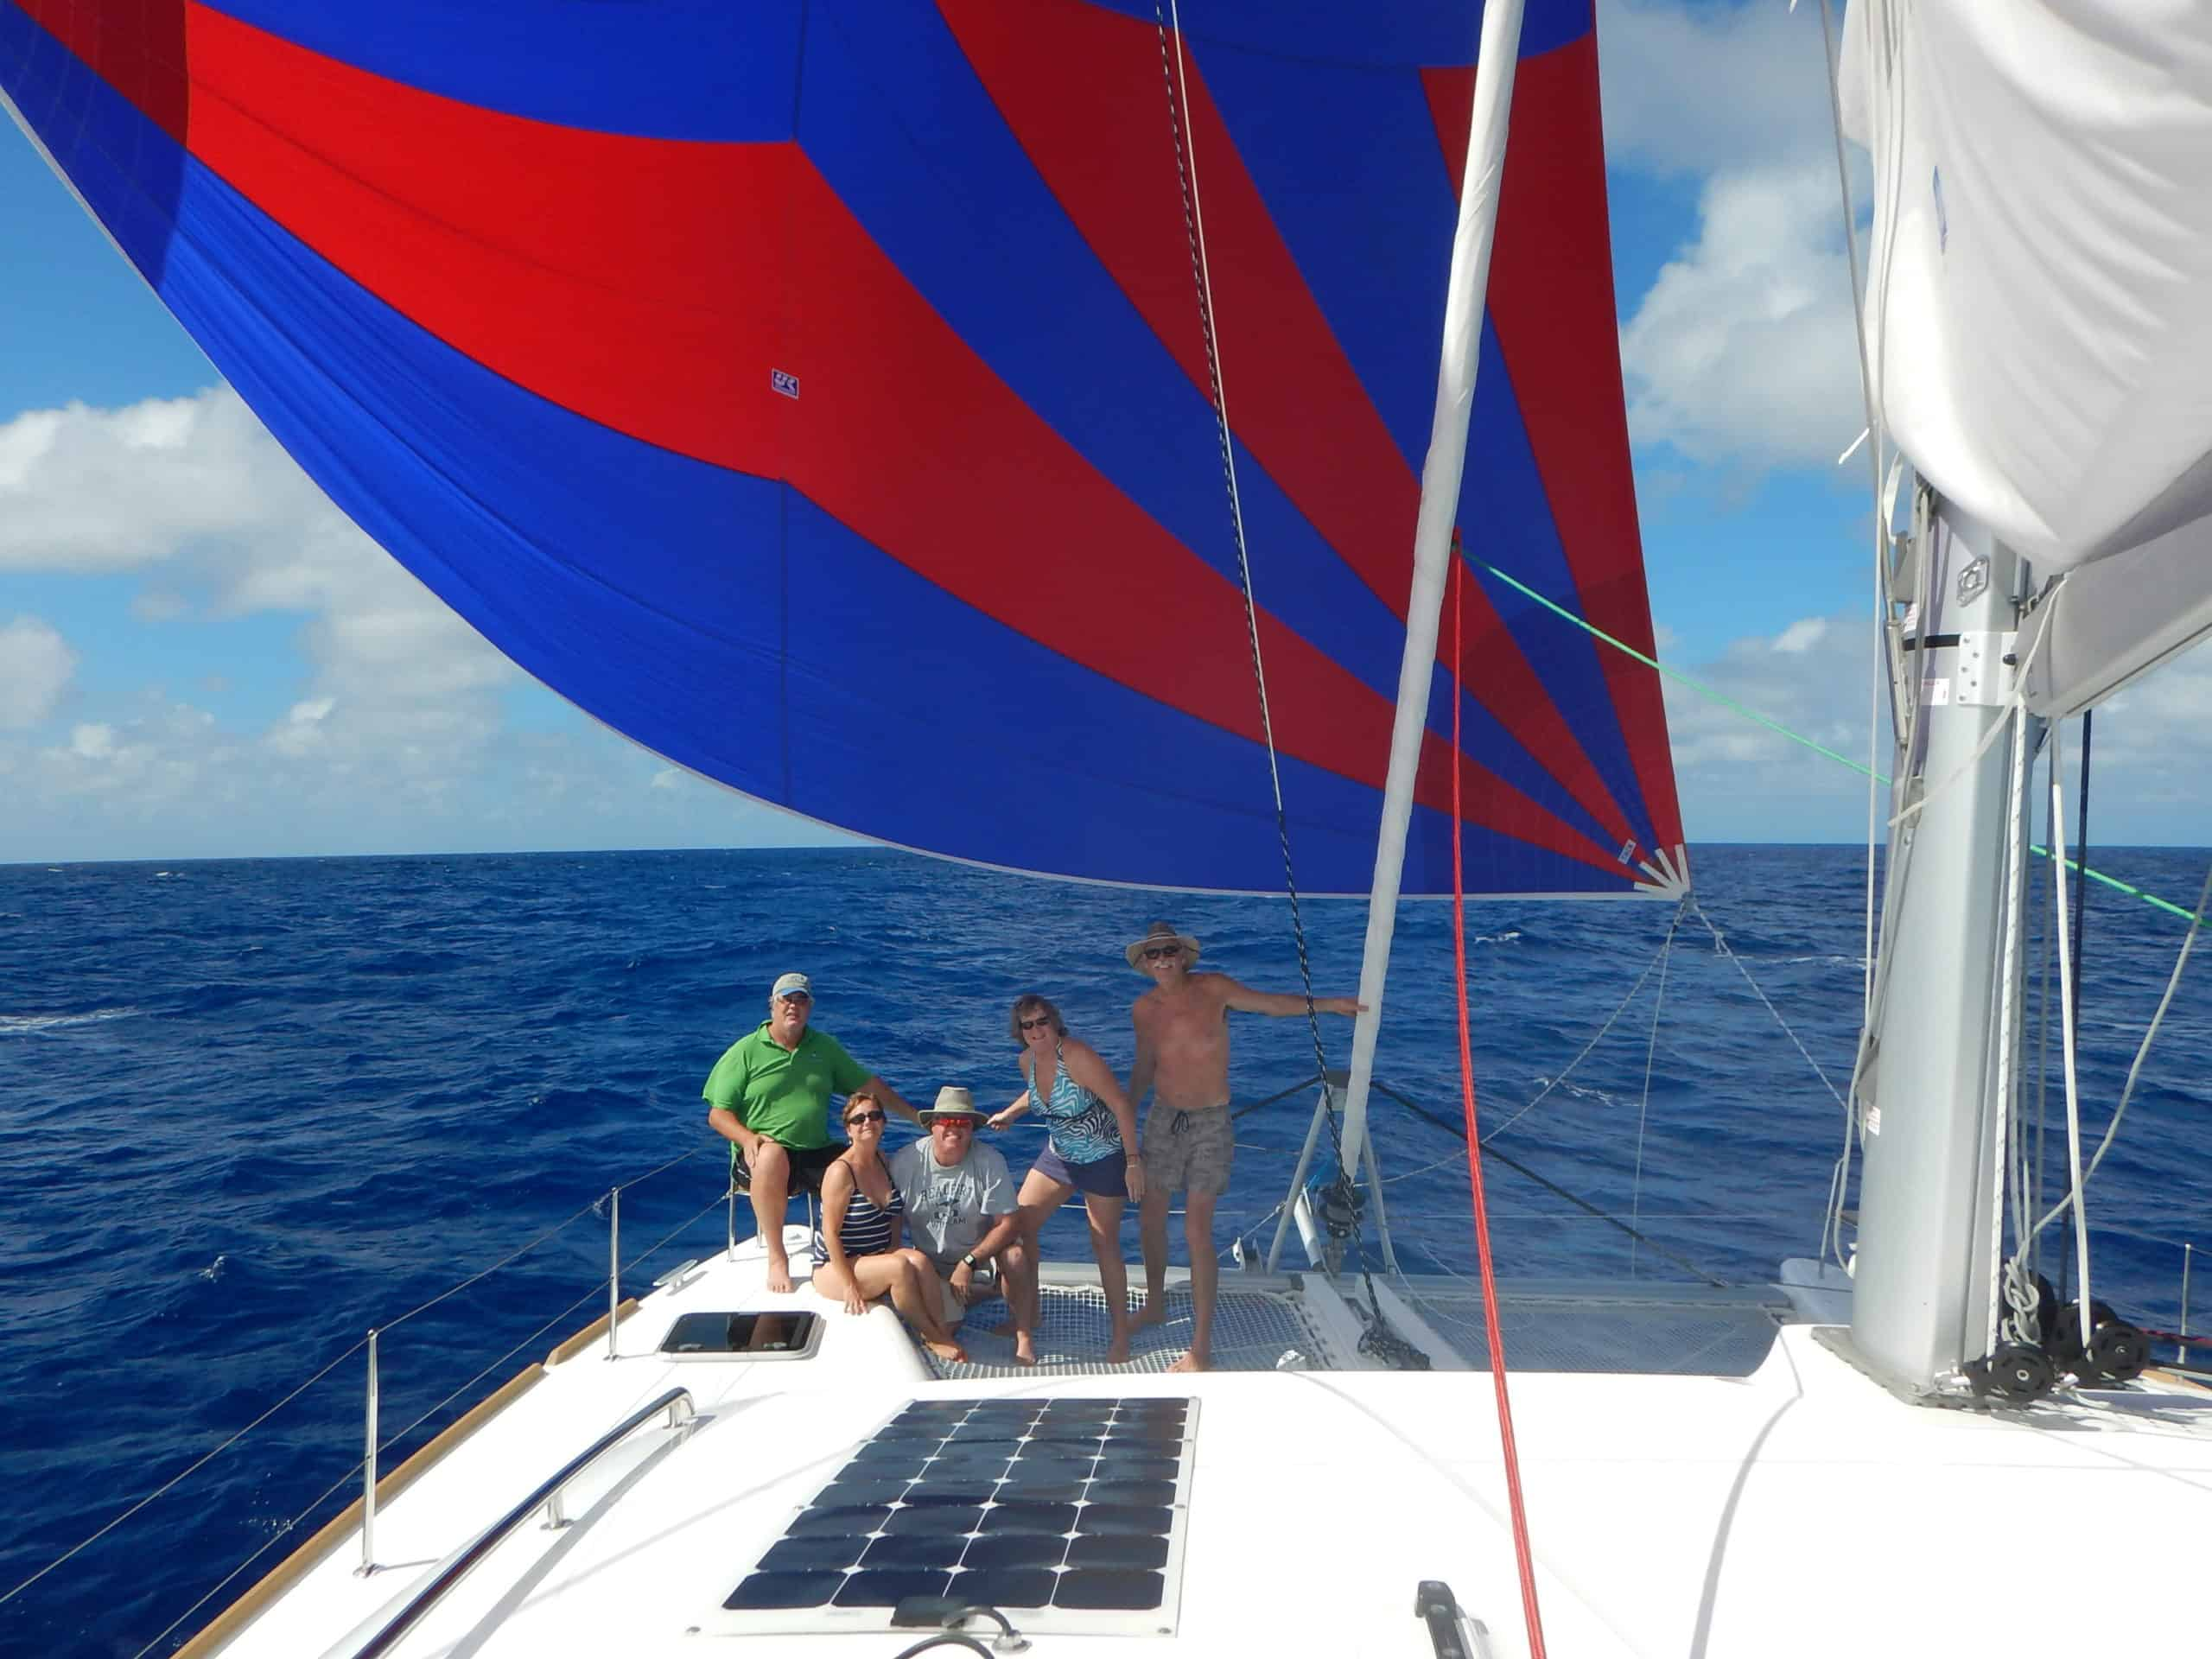 Crew and spinnaker